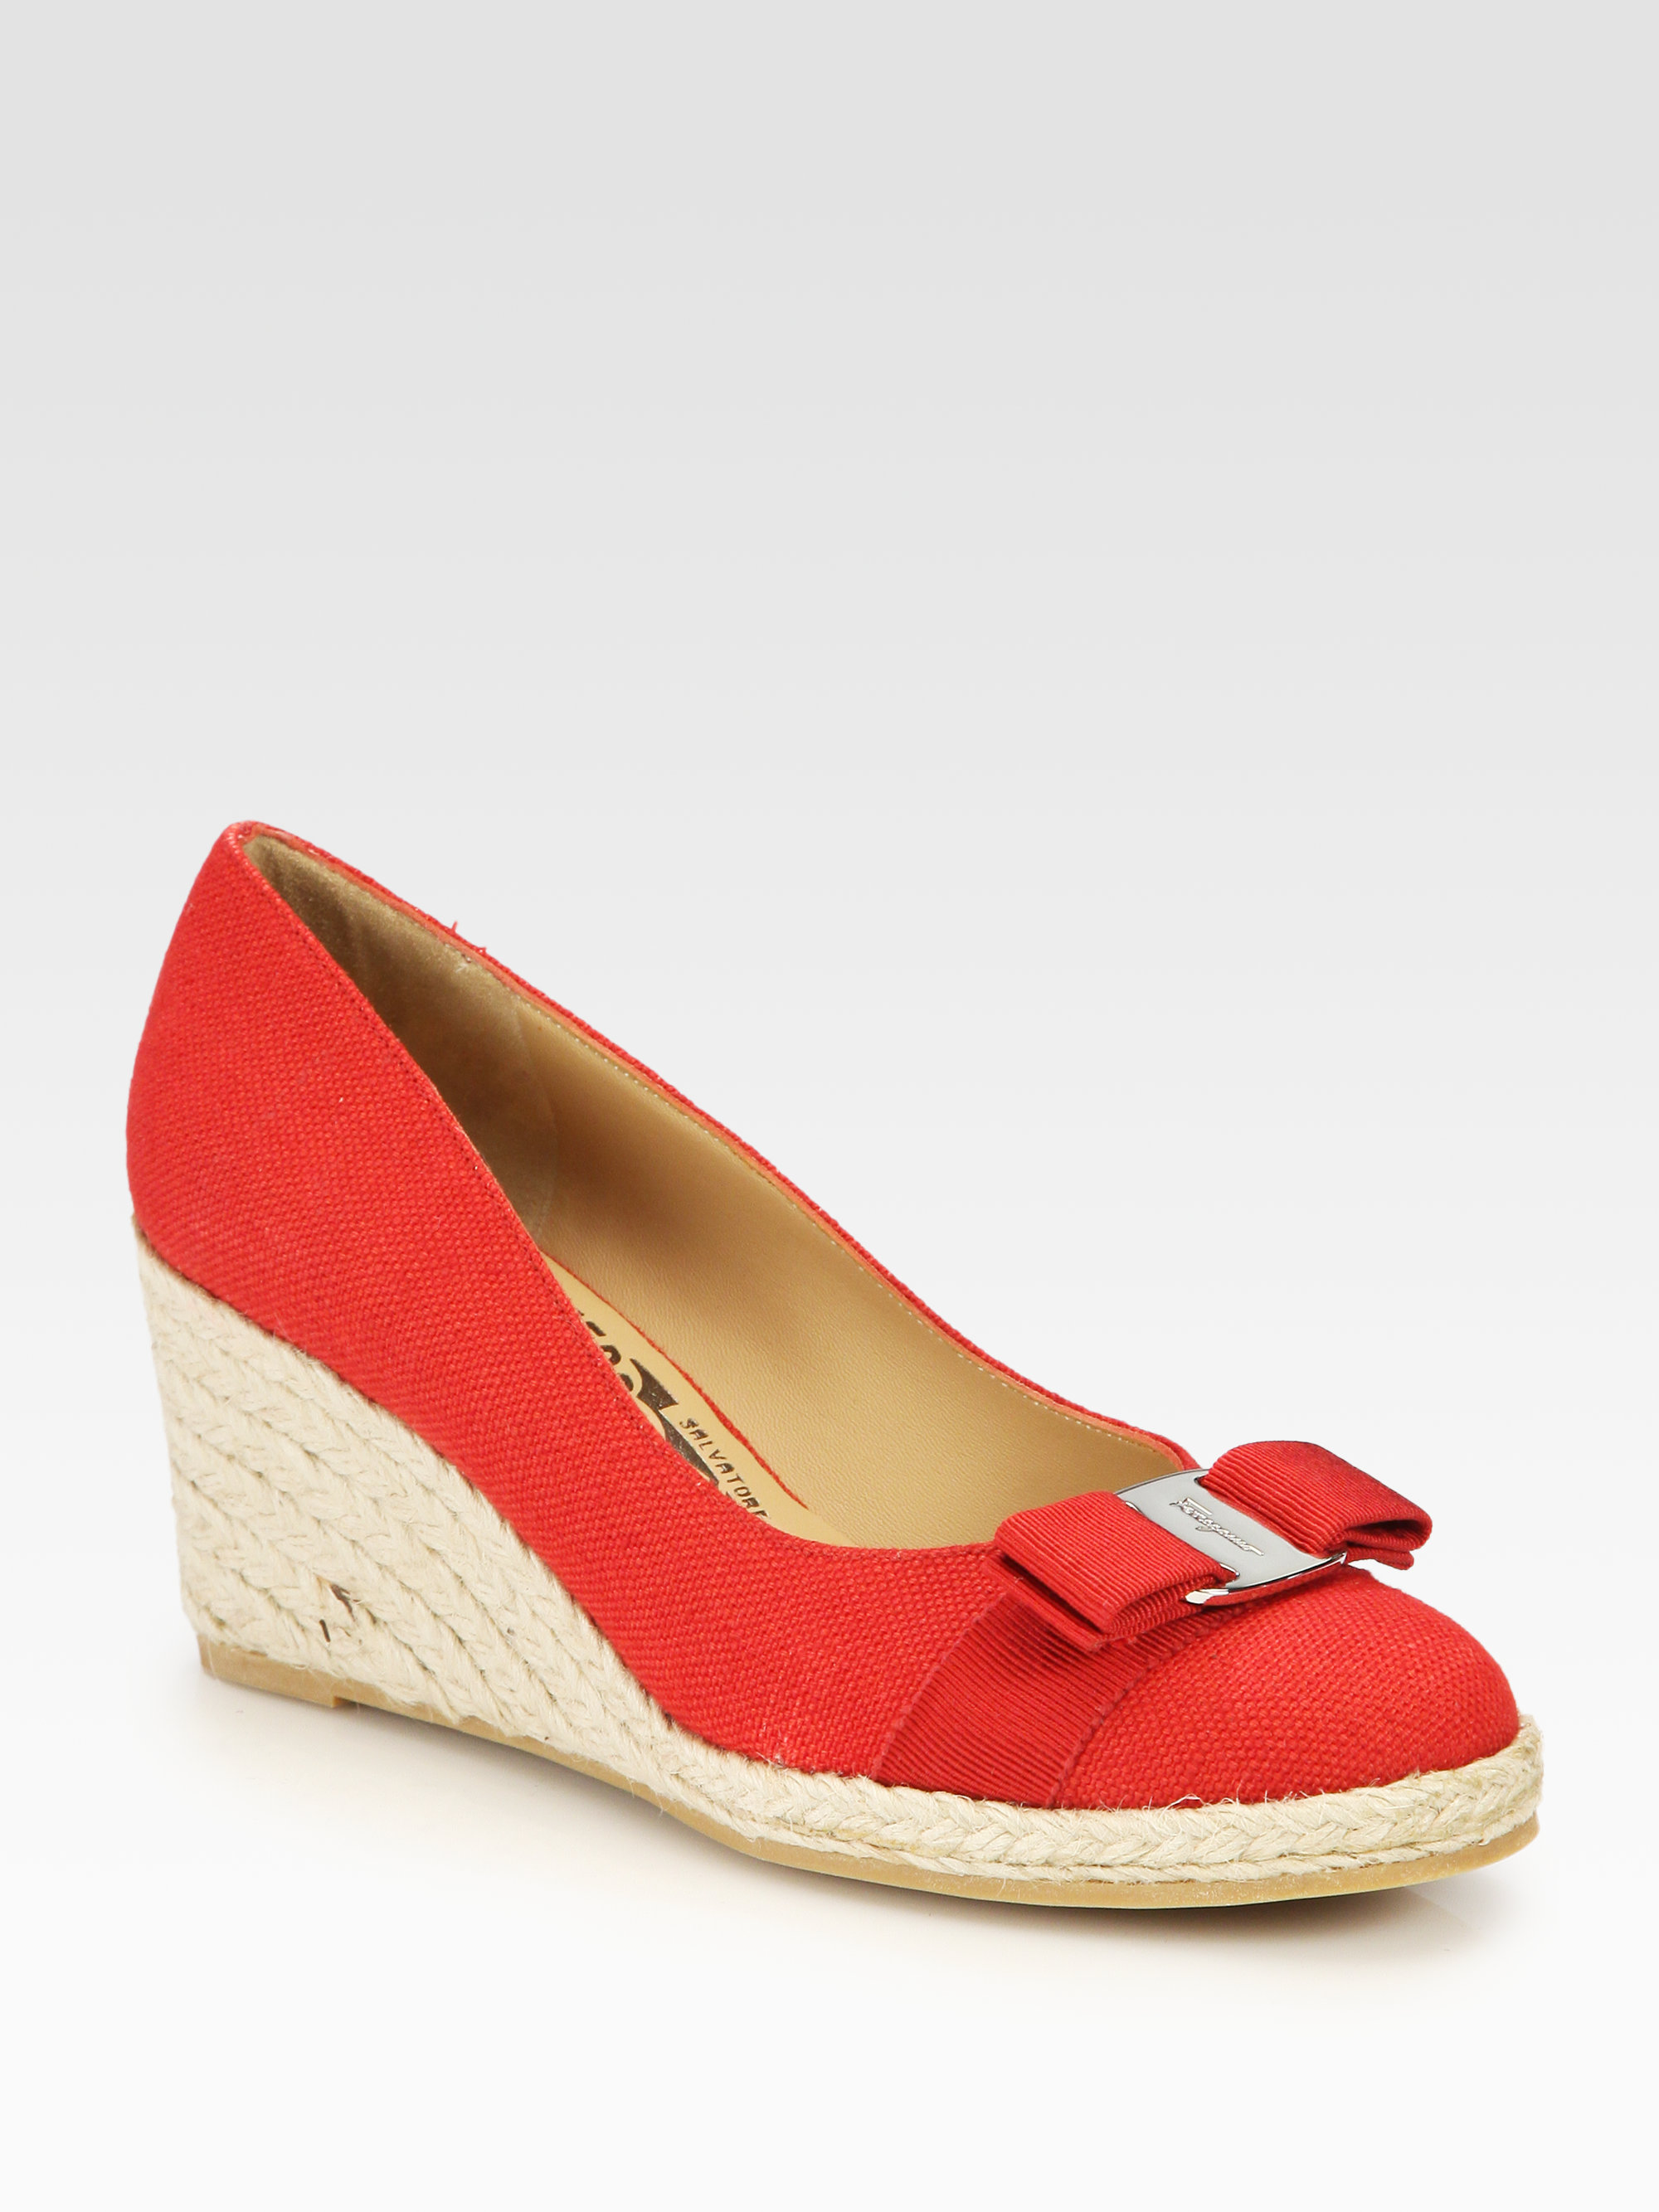 Salvatore Ferragamo Embroidered Canvas Wedges